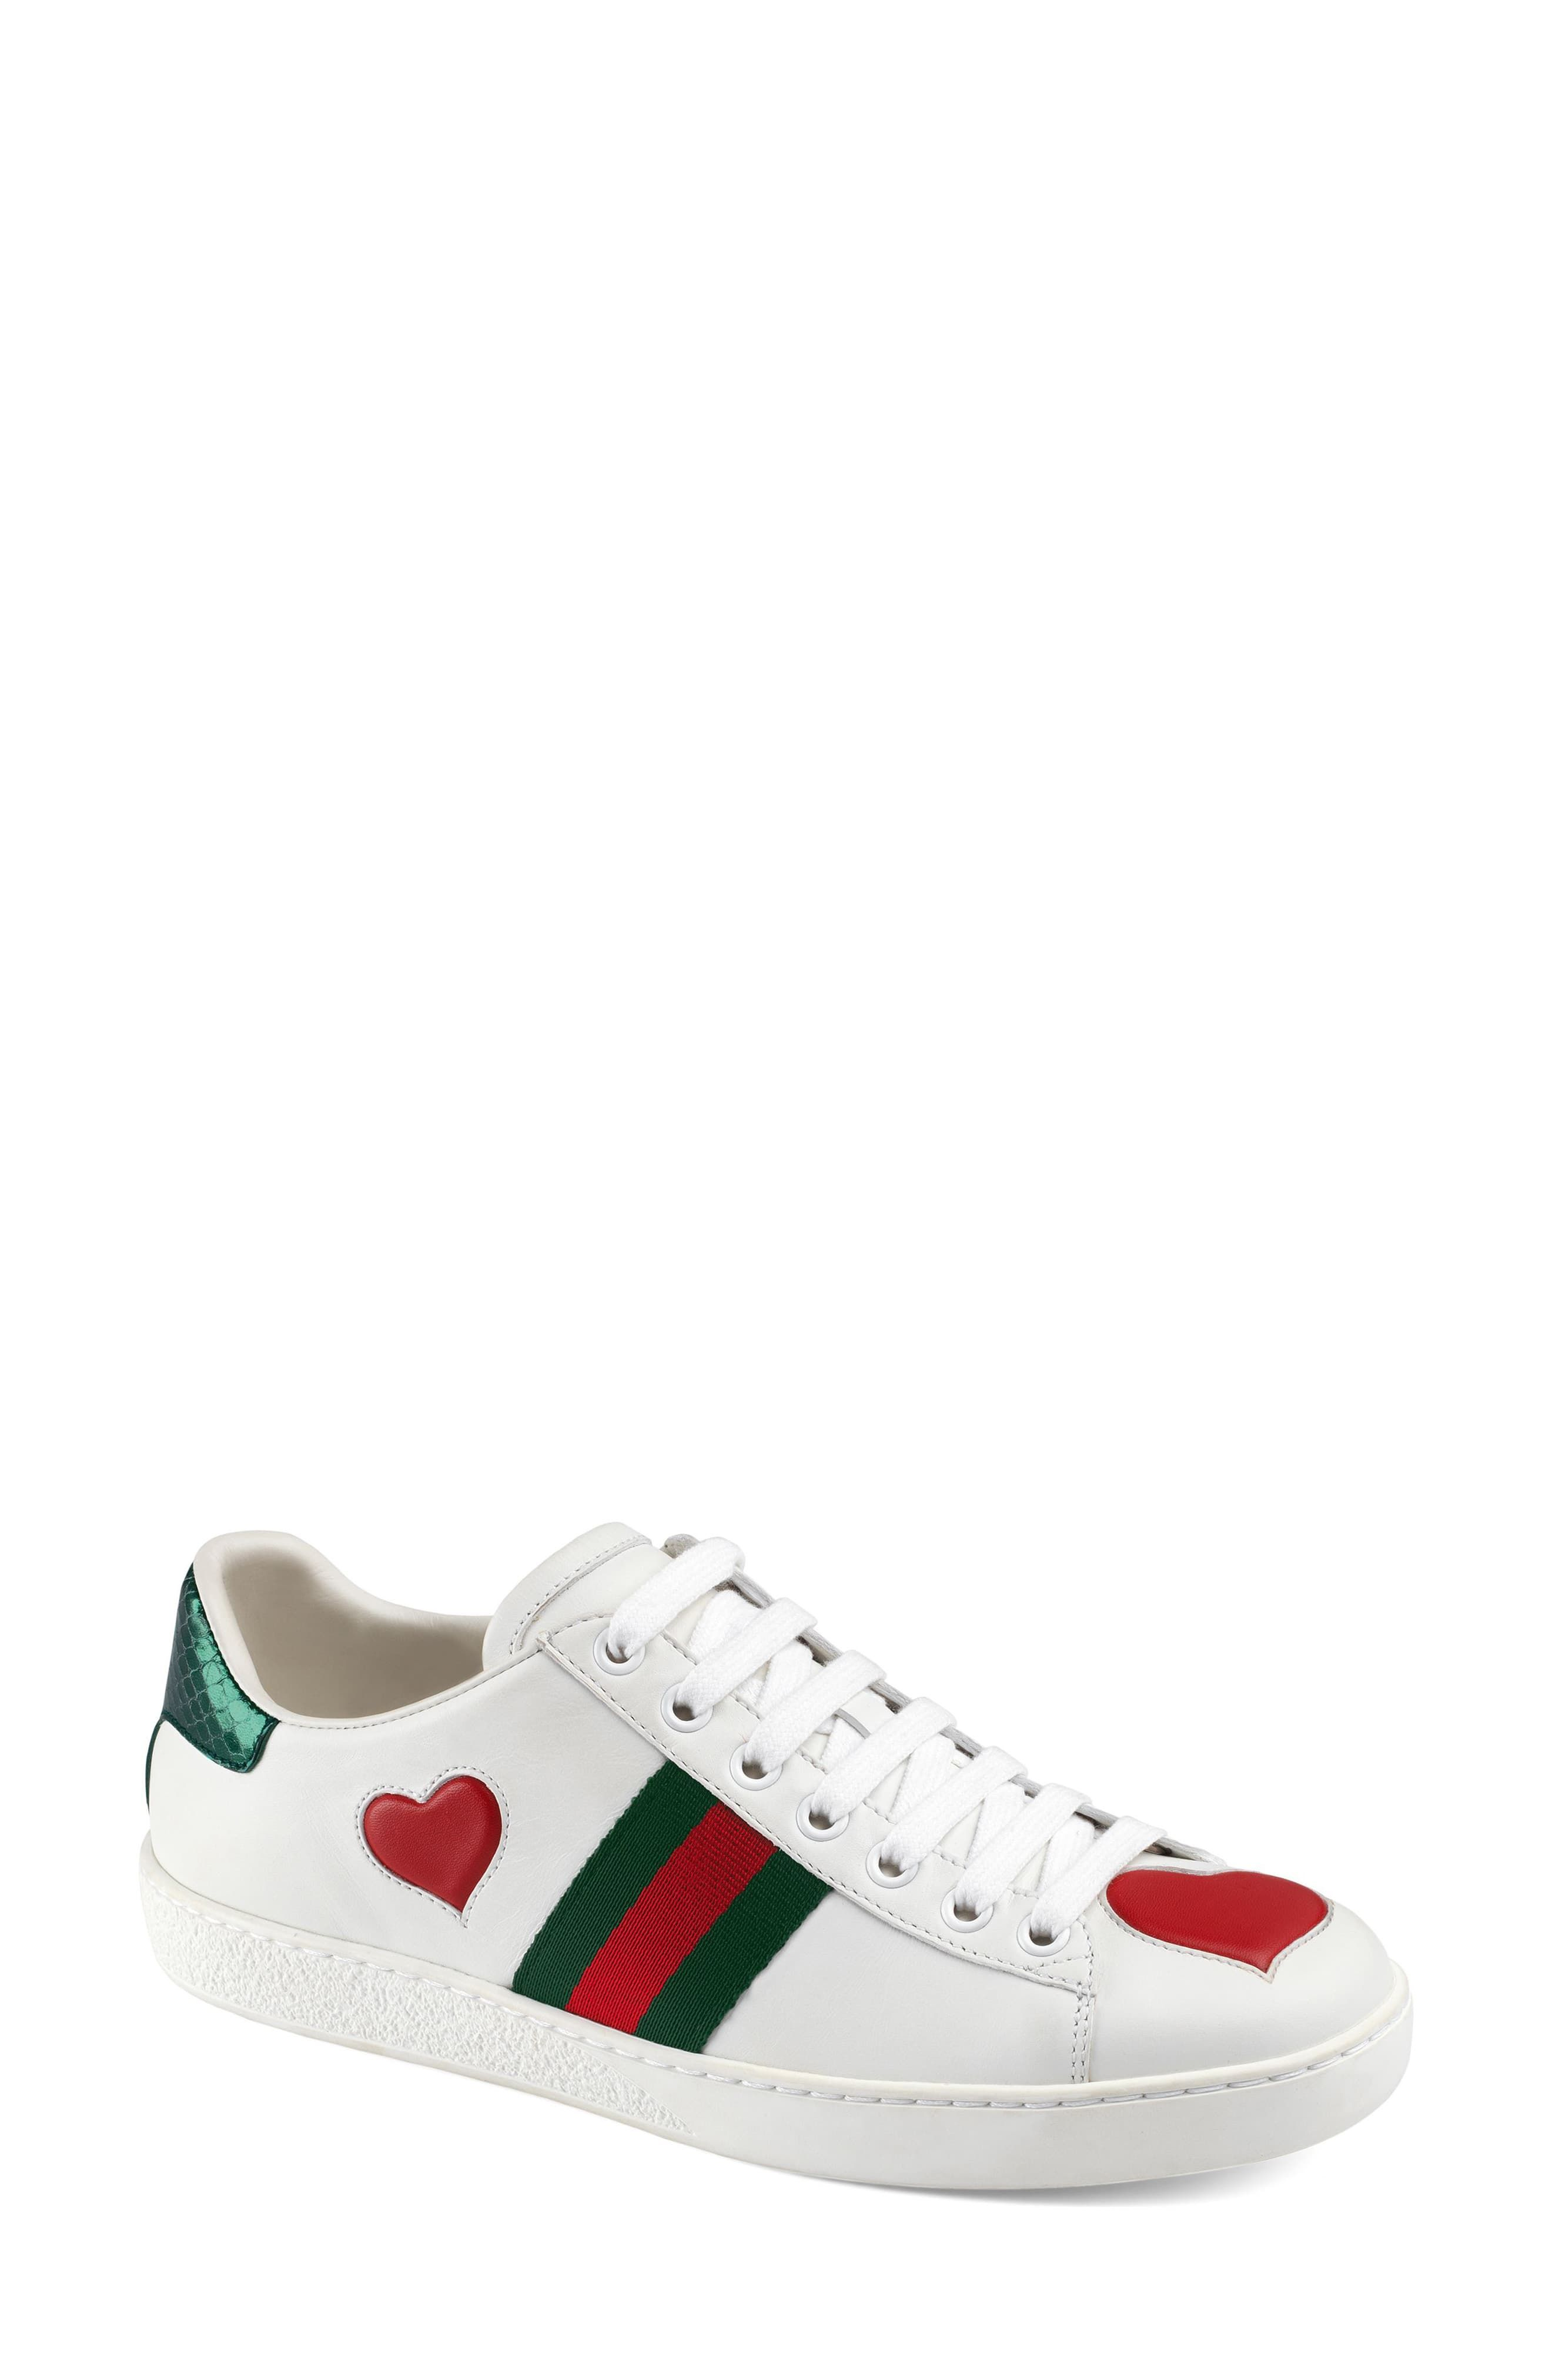 Gucci New Ace Heart Sneaker In 2019 Products Gucci Shoes Shoes